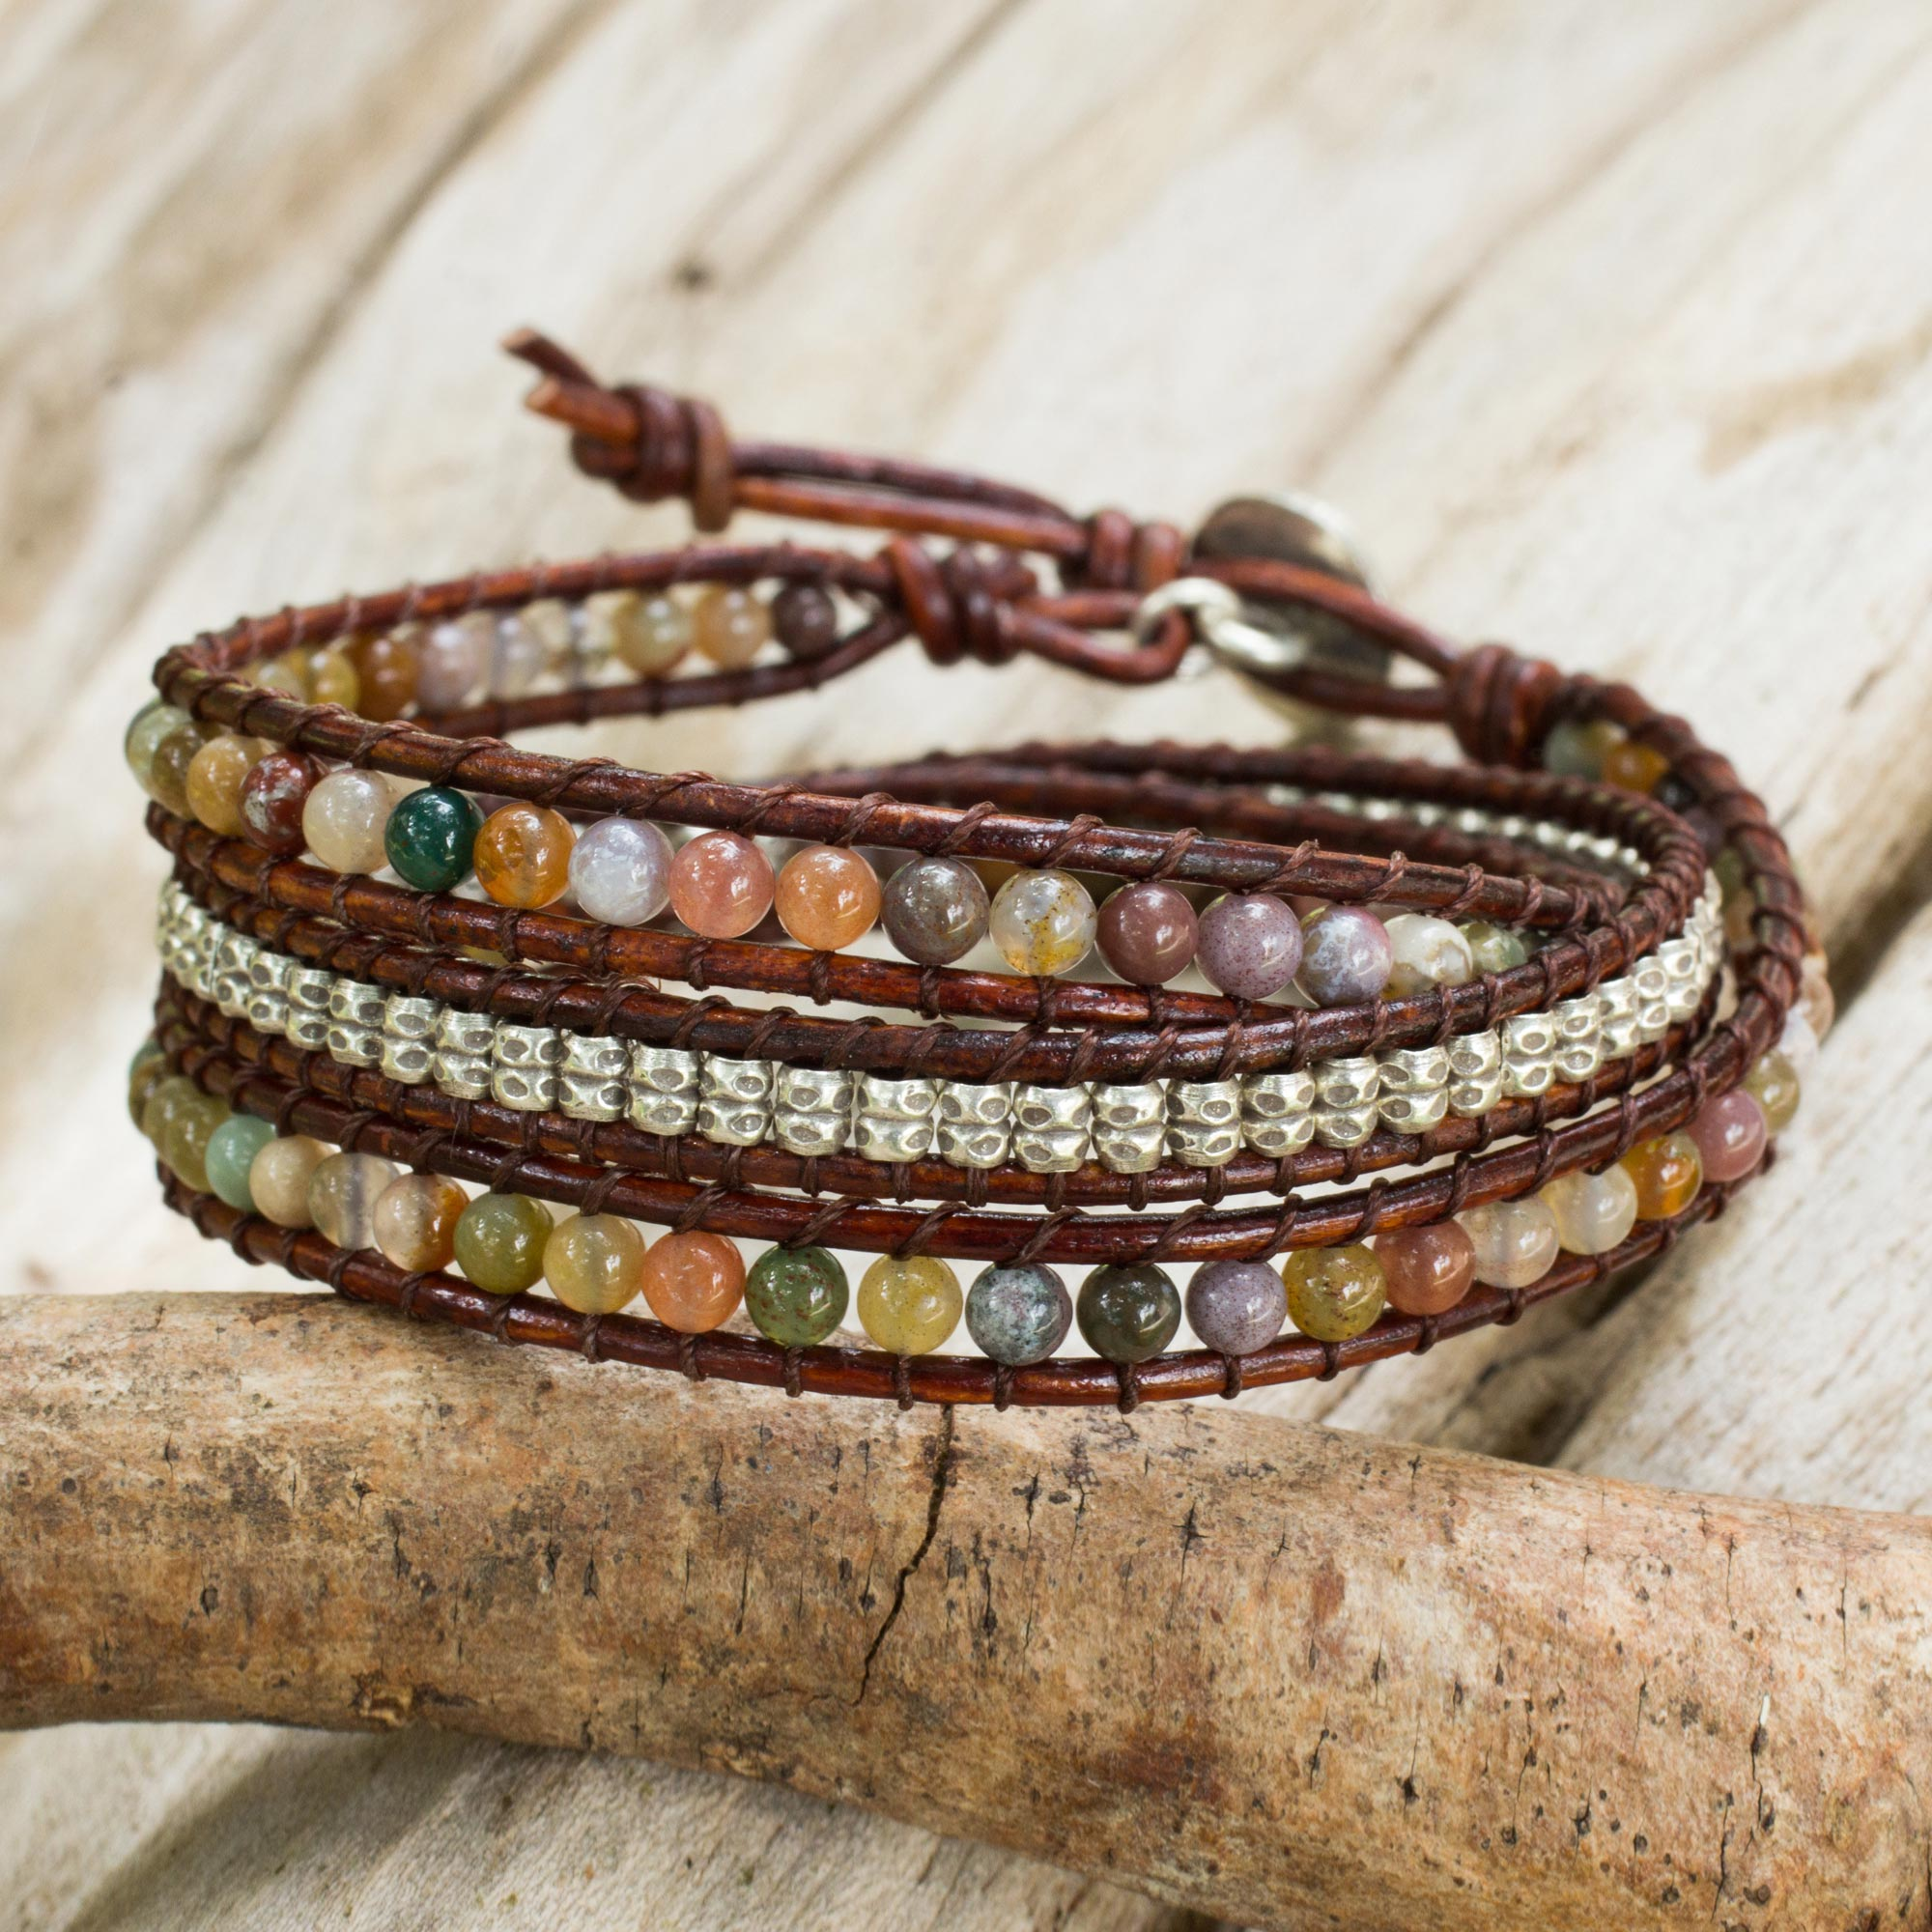 Jasper and 950 Silver Wrap Style Bracelet from Thailand, Colorful Enigma, sterling silver charm leather unique mother's day gifts